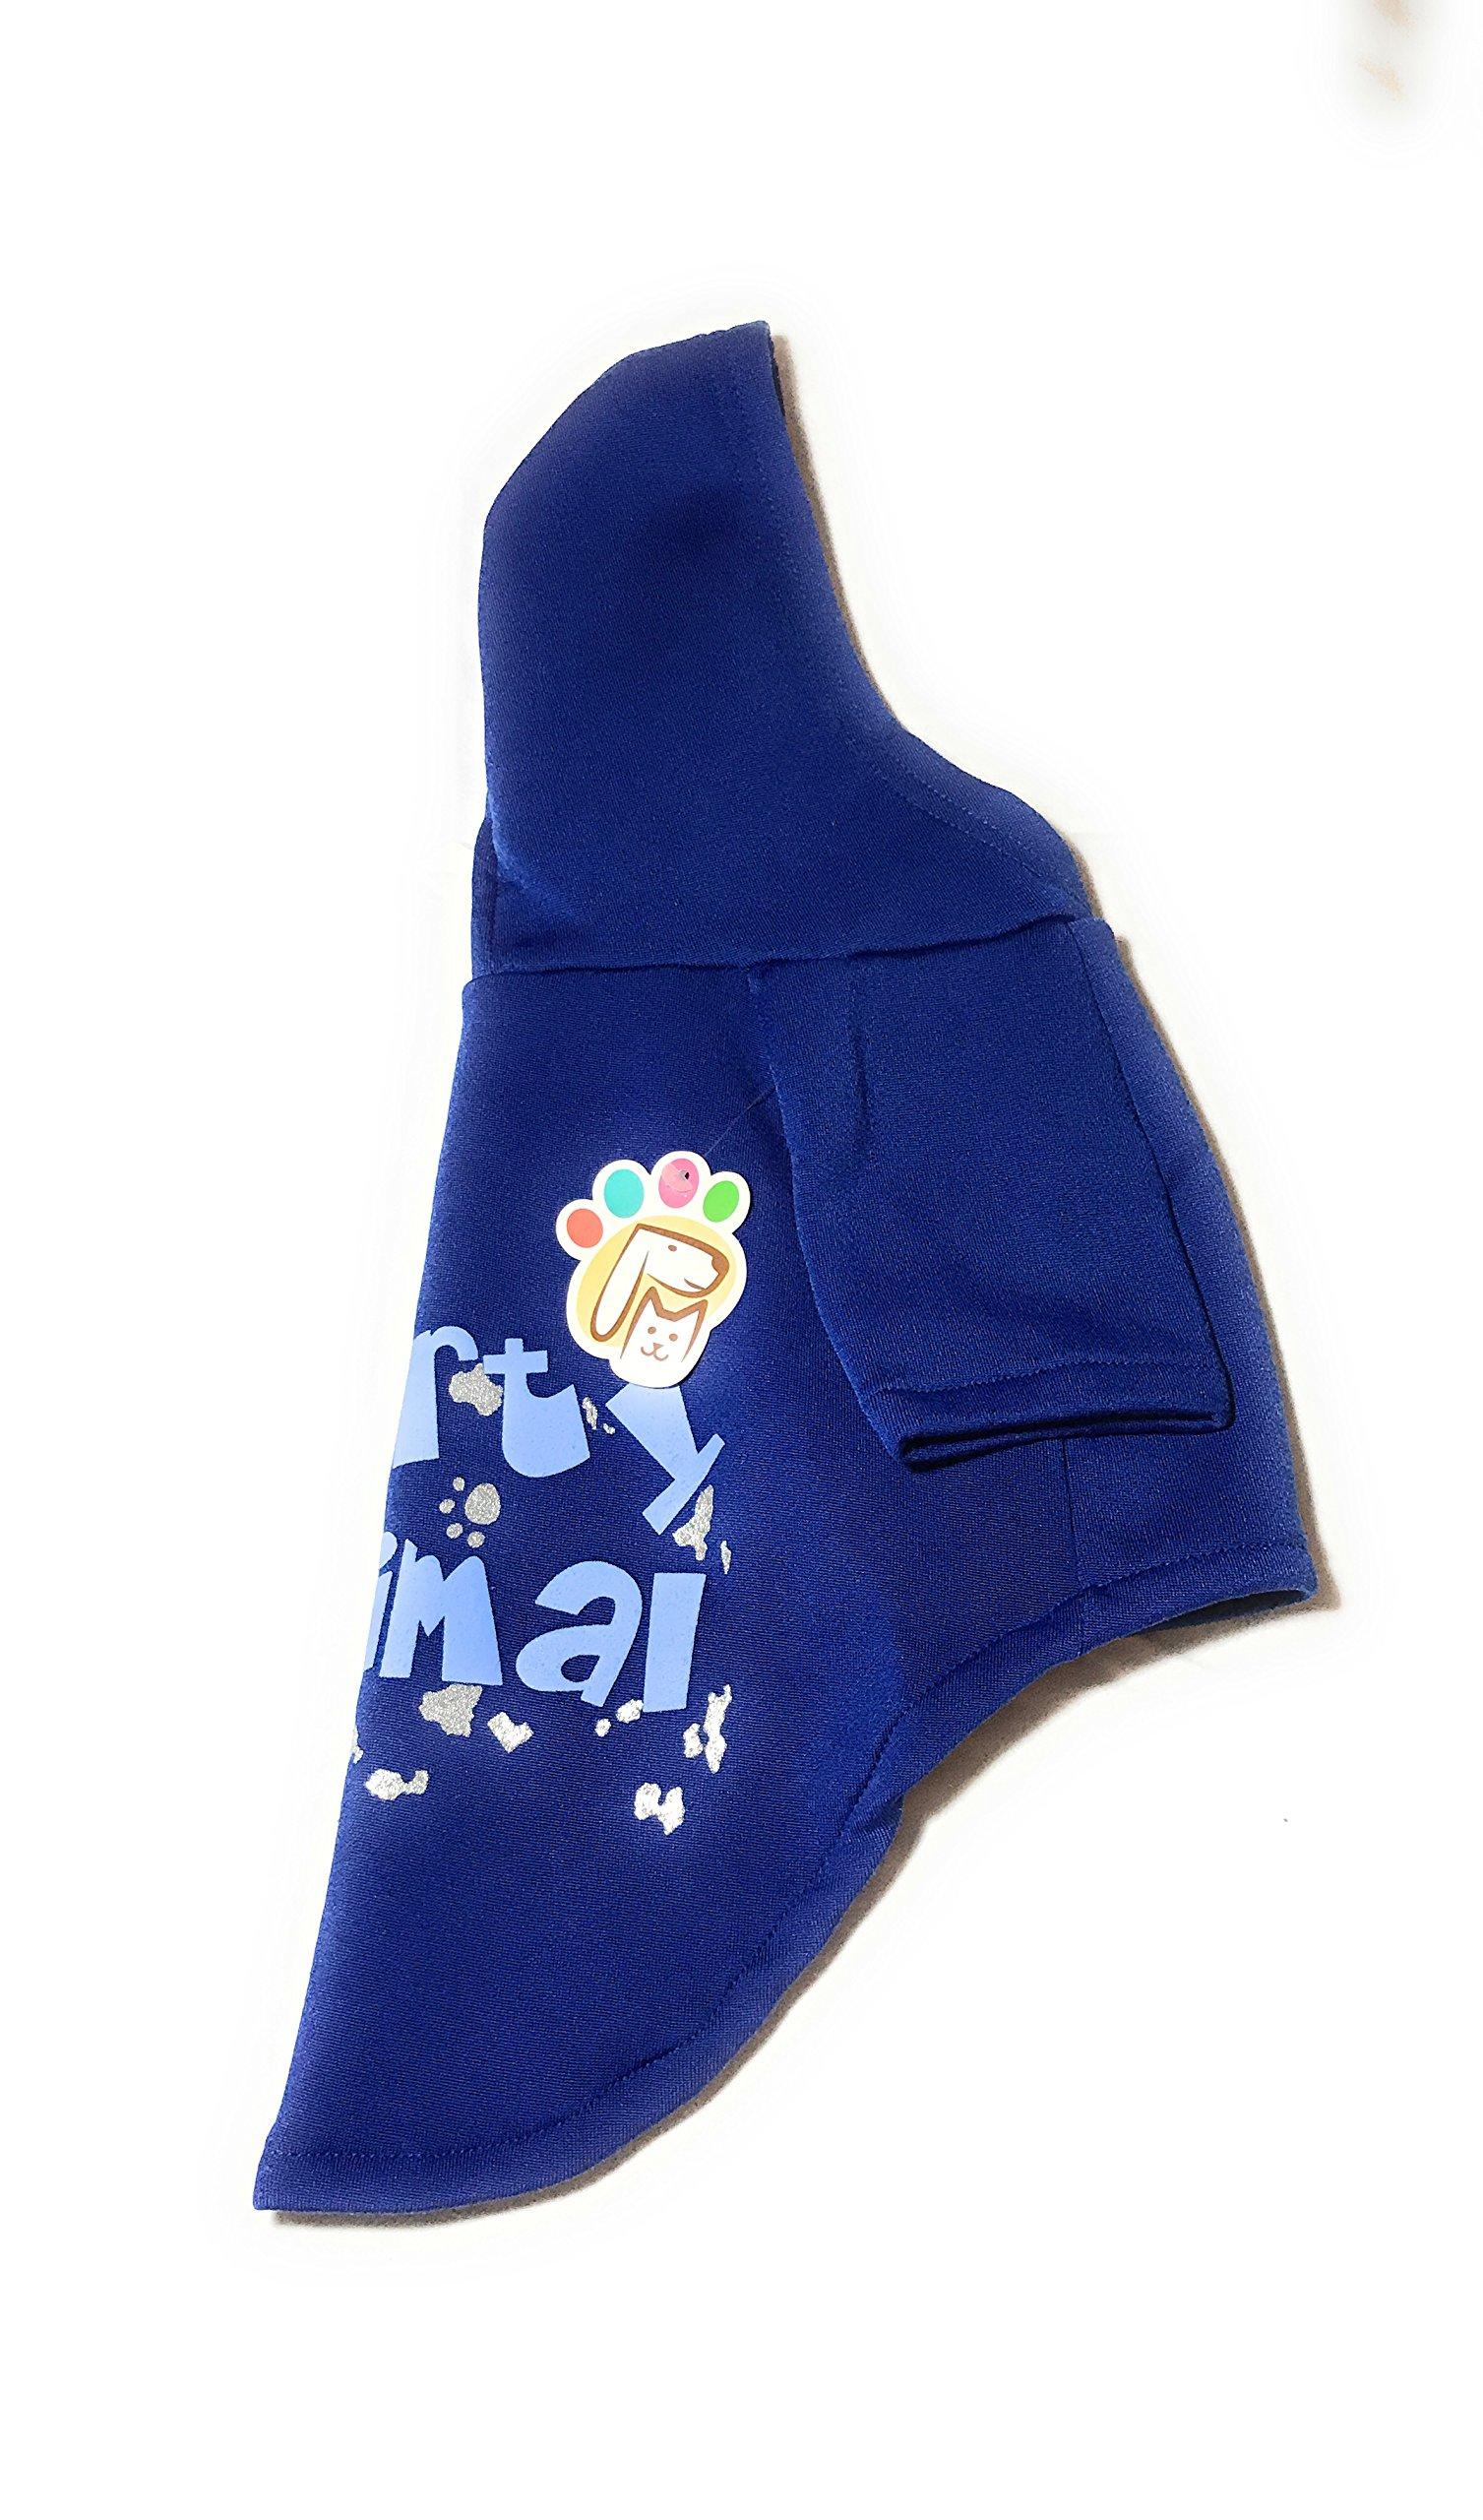 Dog or Puppy Sweater Hoodie ´Party Animal´ Blue and Silver for Large or Extra Large Pets XL size/ Extra Large Fashion and Funny Hoodie Shirt Petmont Brand For Boys Or Girls by Petmont (Image #2)